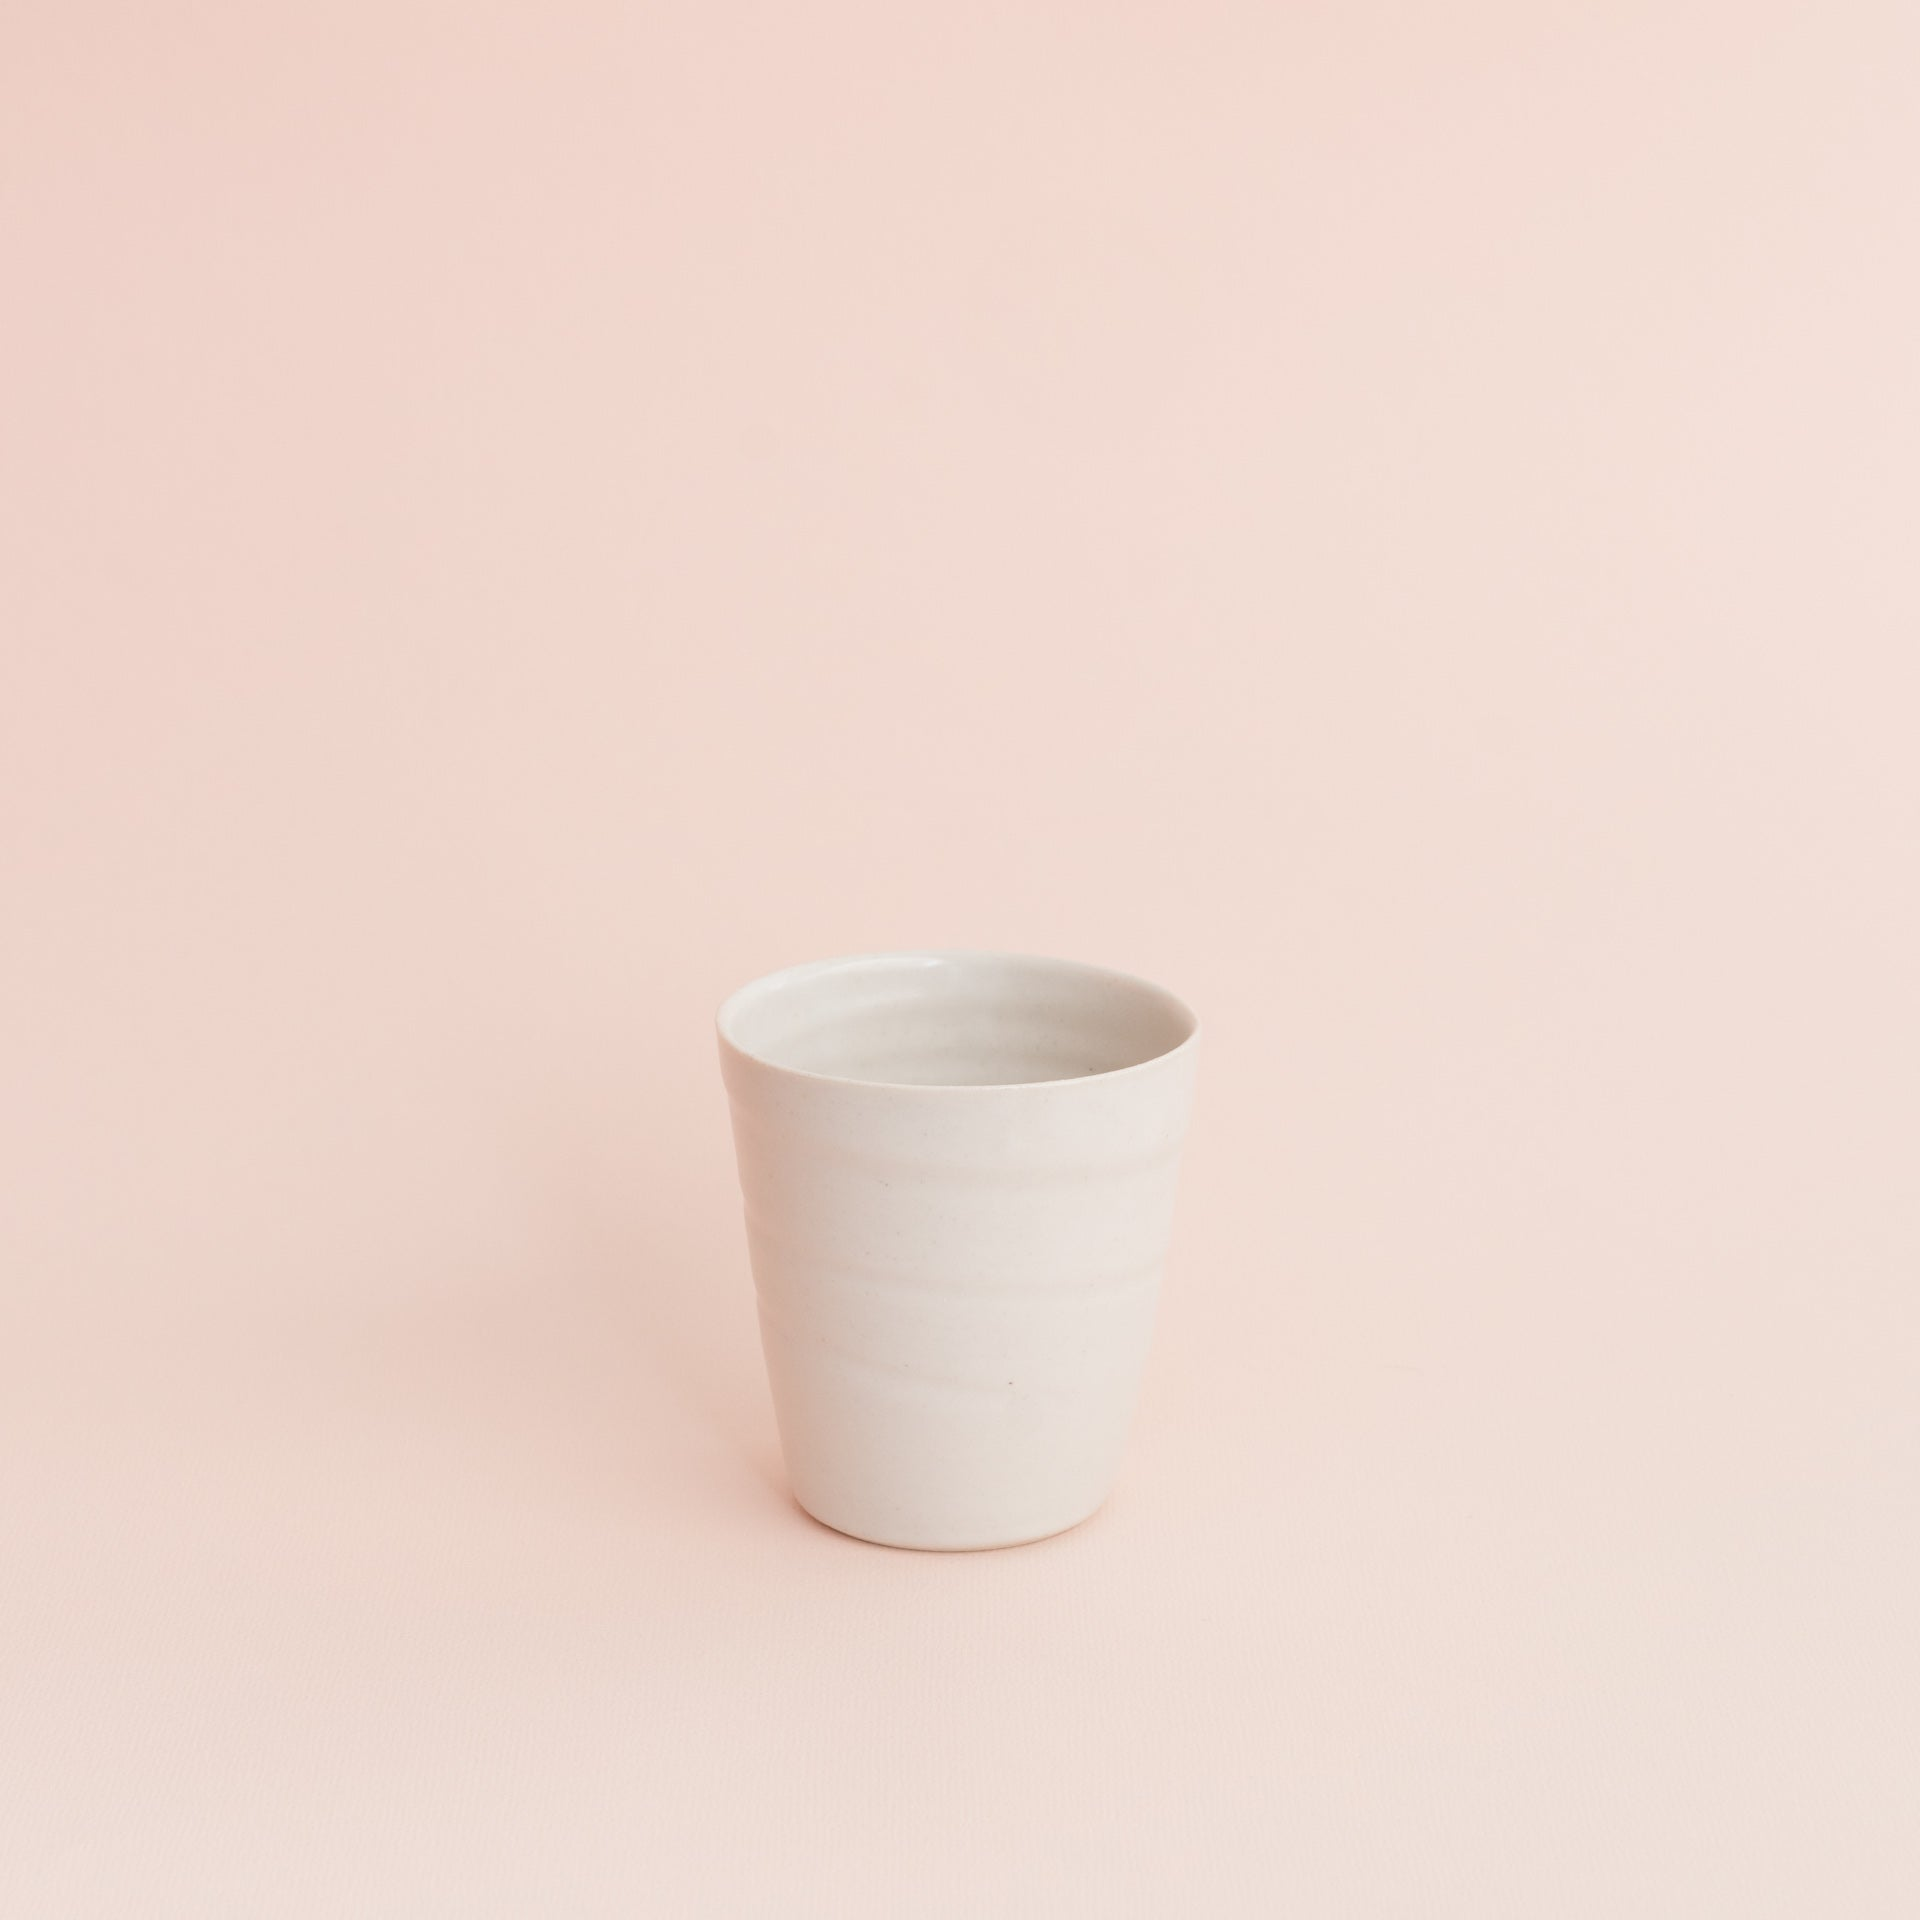 Small Tumbler - Super white